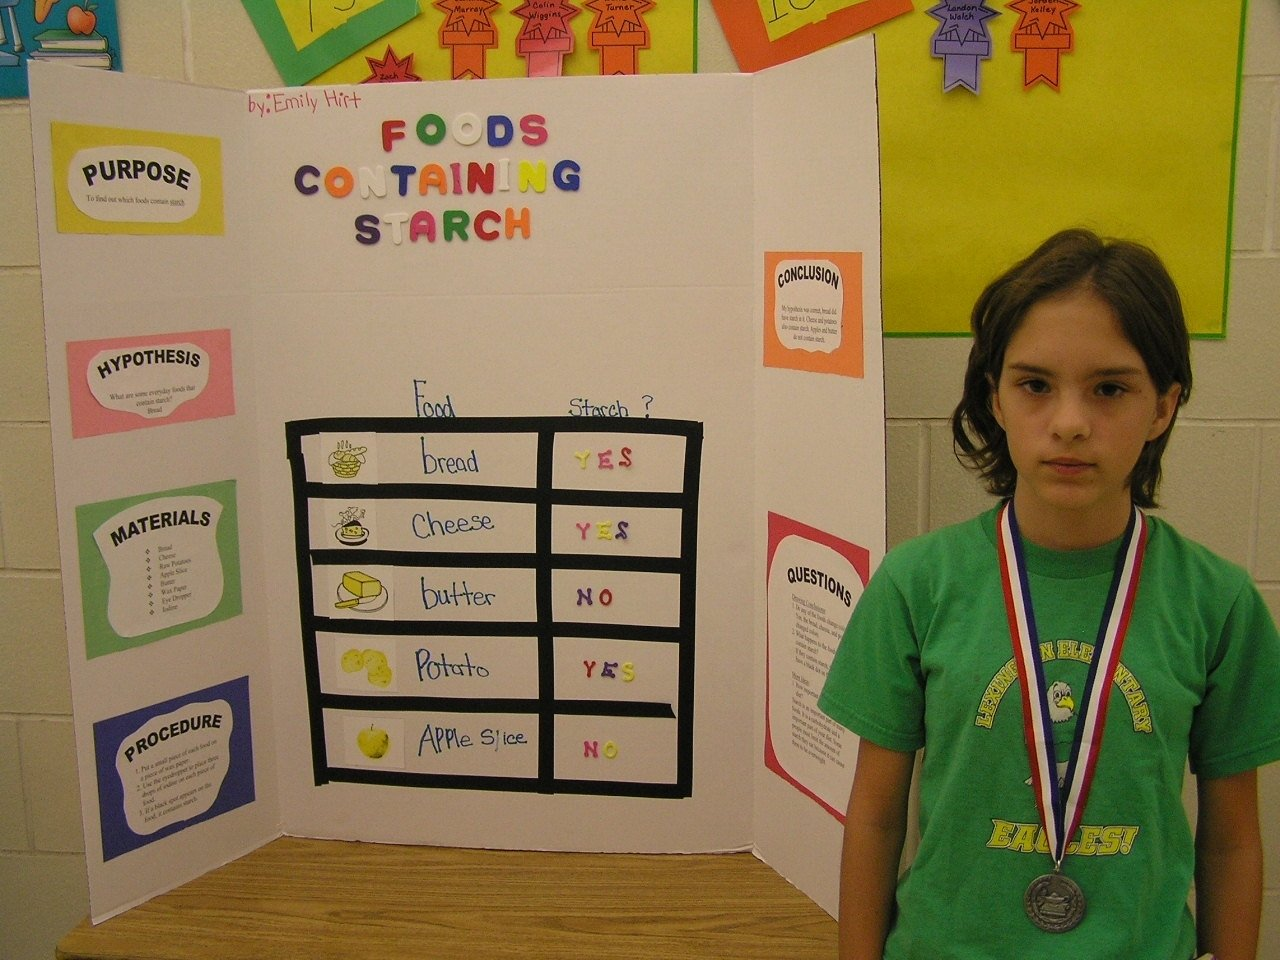 10 Fantastic Science Fair Project Ideas For 3Rd Graders easy science fair projects for 3rd graders college paper help 2020